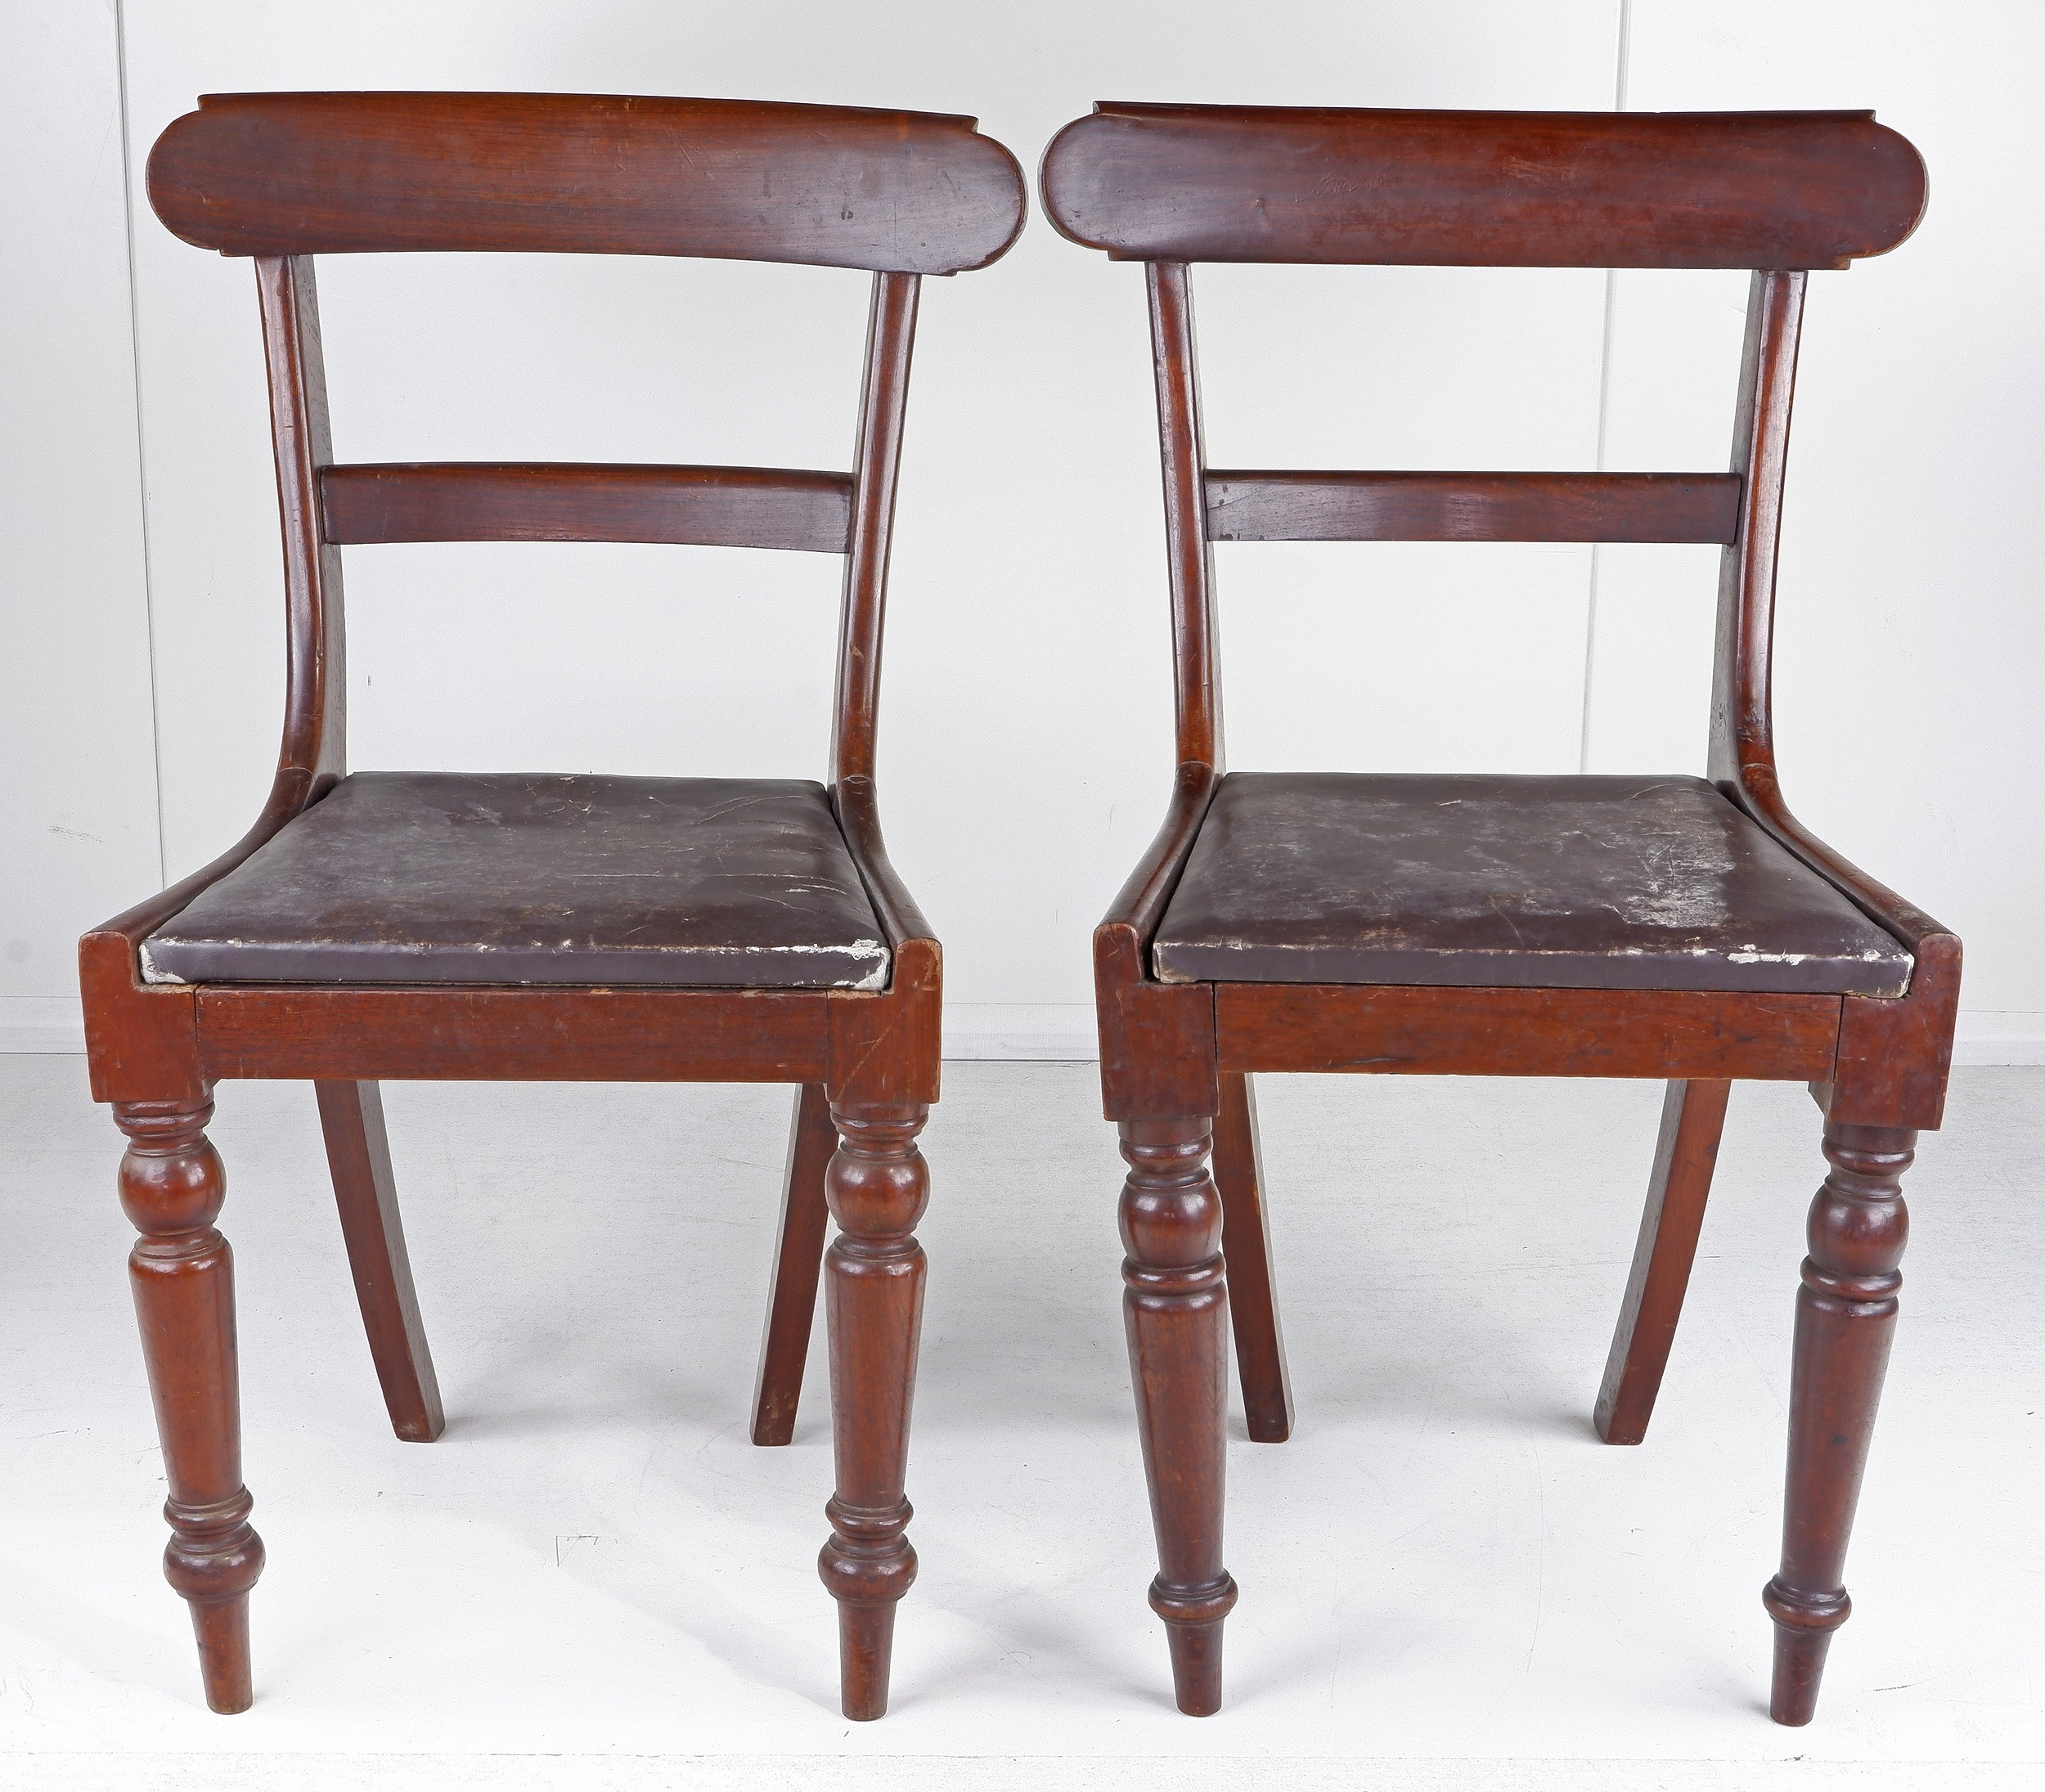 'Four Australian Cedar Bar Back Chairs 19th Century '